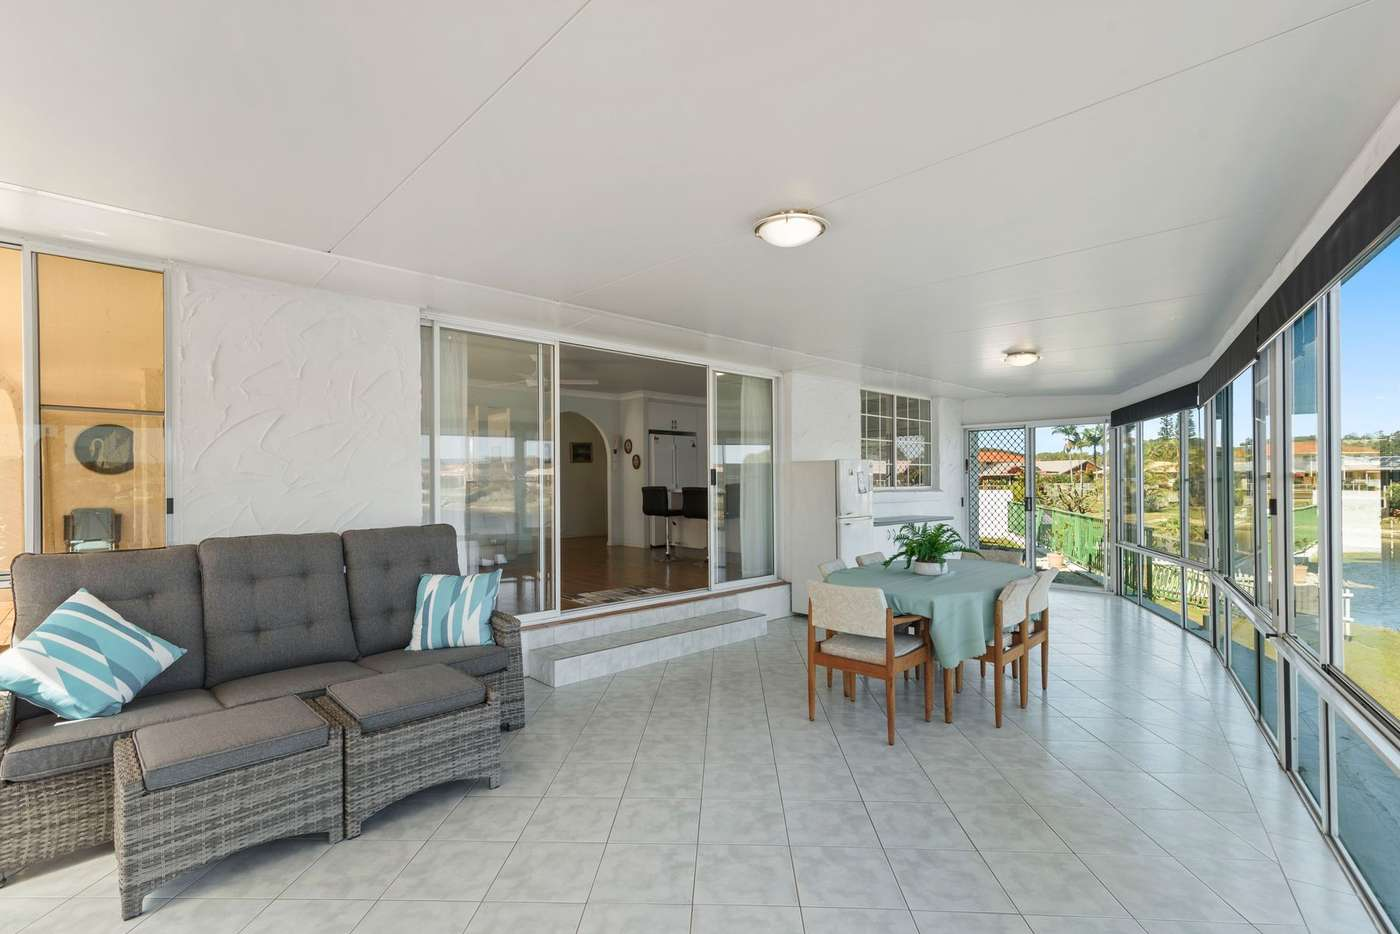 Sixth view of Homely house listing, 43 Pintail Crescent, Burleigh Waters QLD 4220